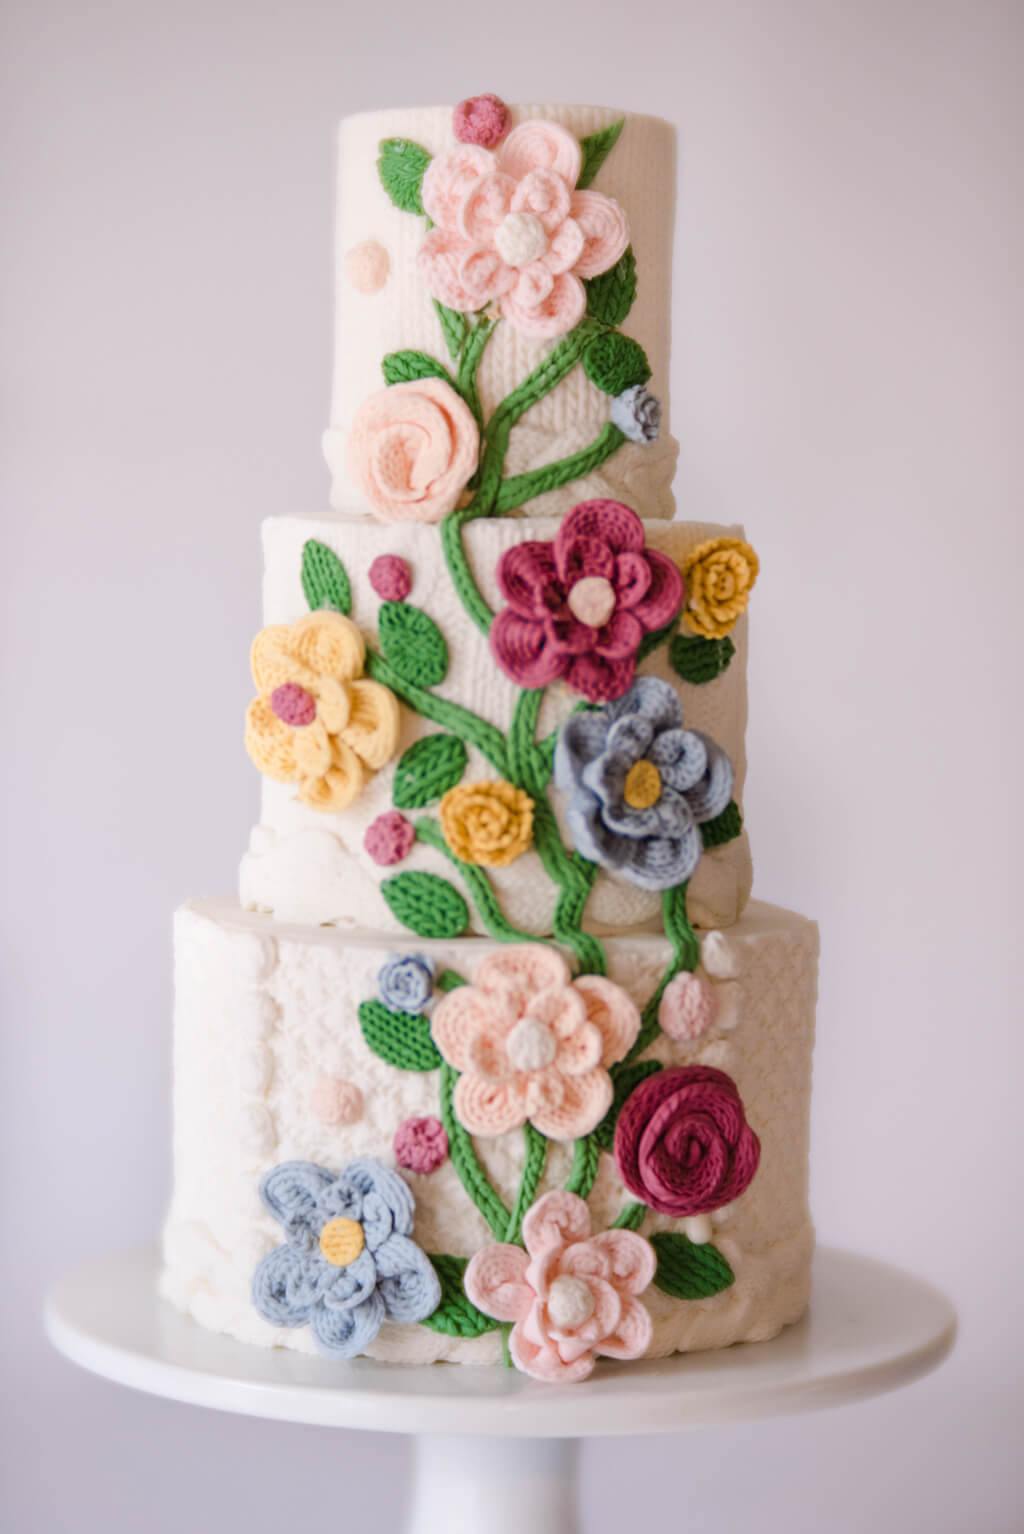 Free Knitting Patterns For Wedding Cakes: Knit effect cakes tutorial ...